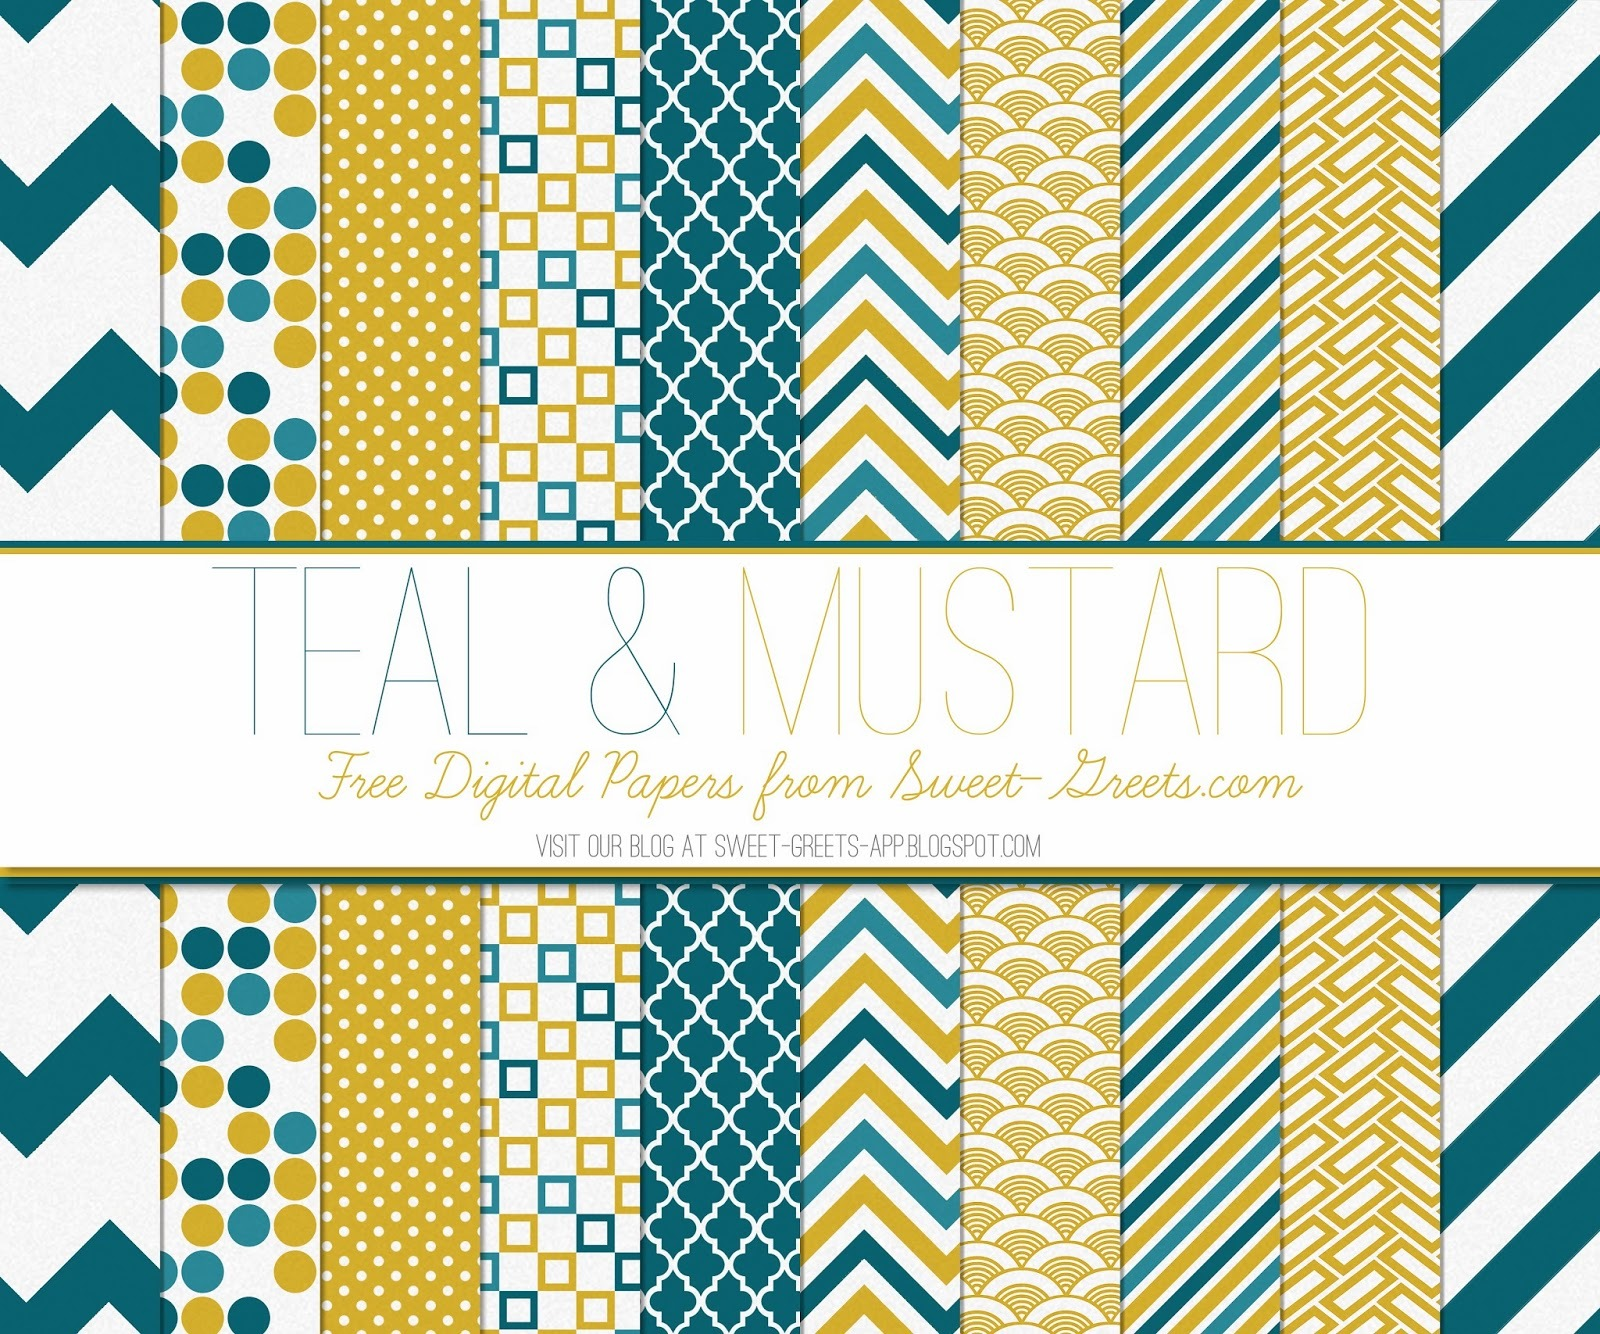 Free Digital Paper: Mustard and Teal